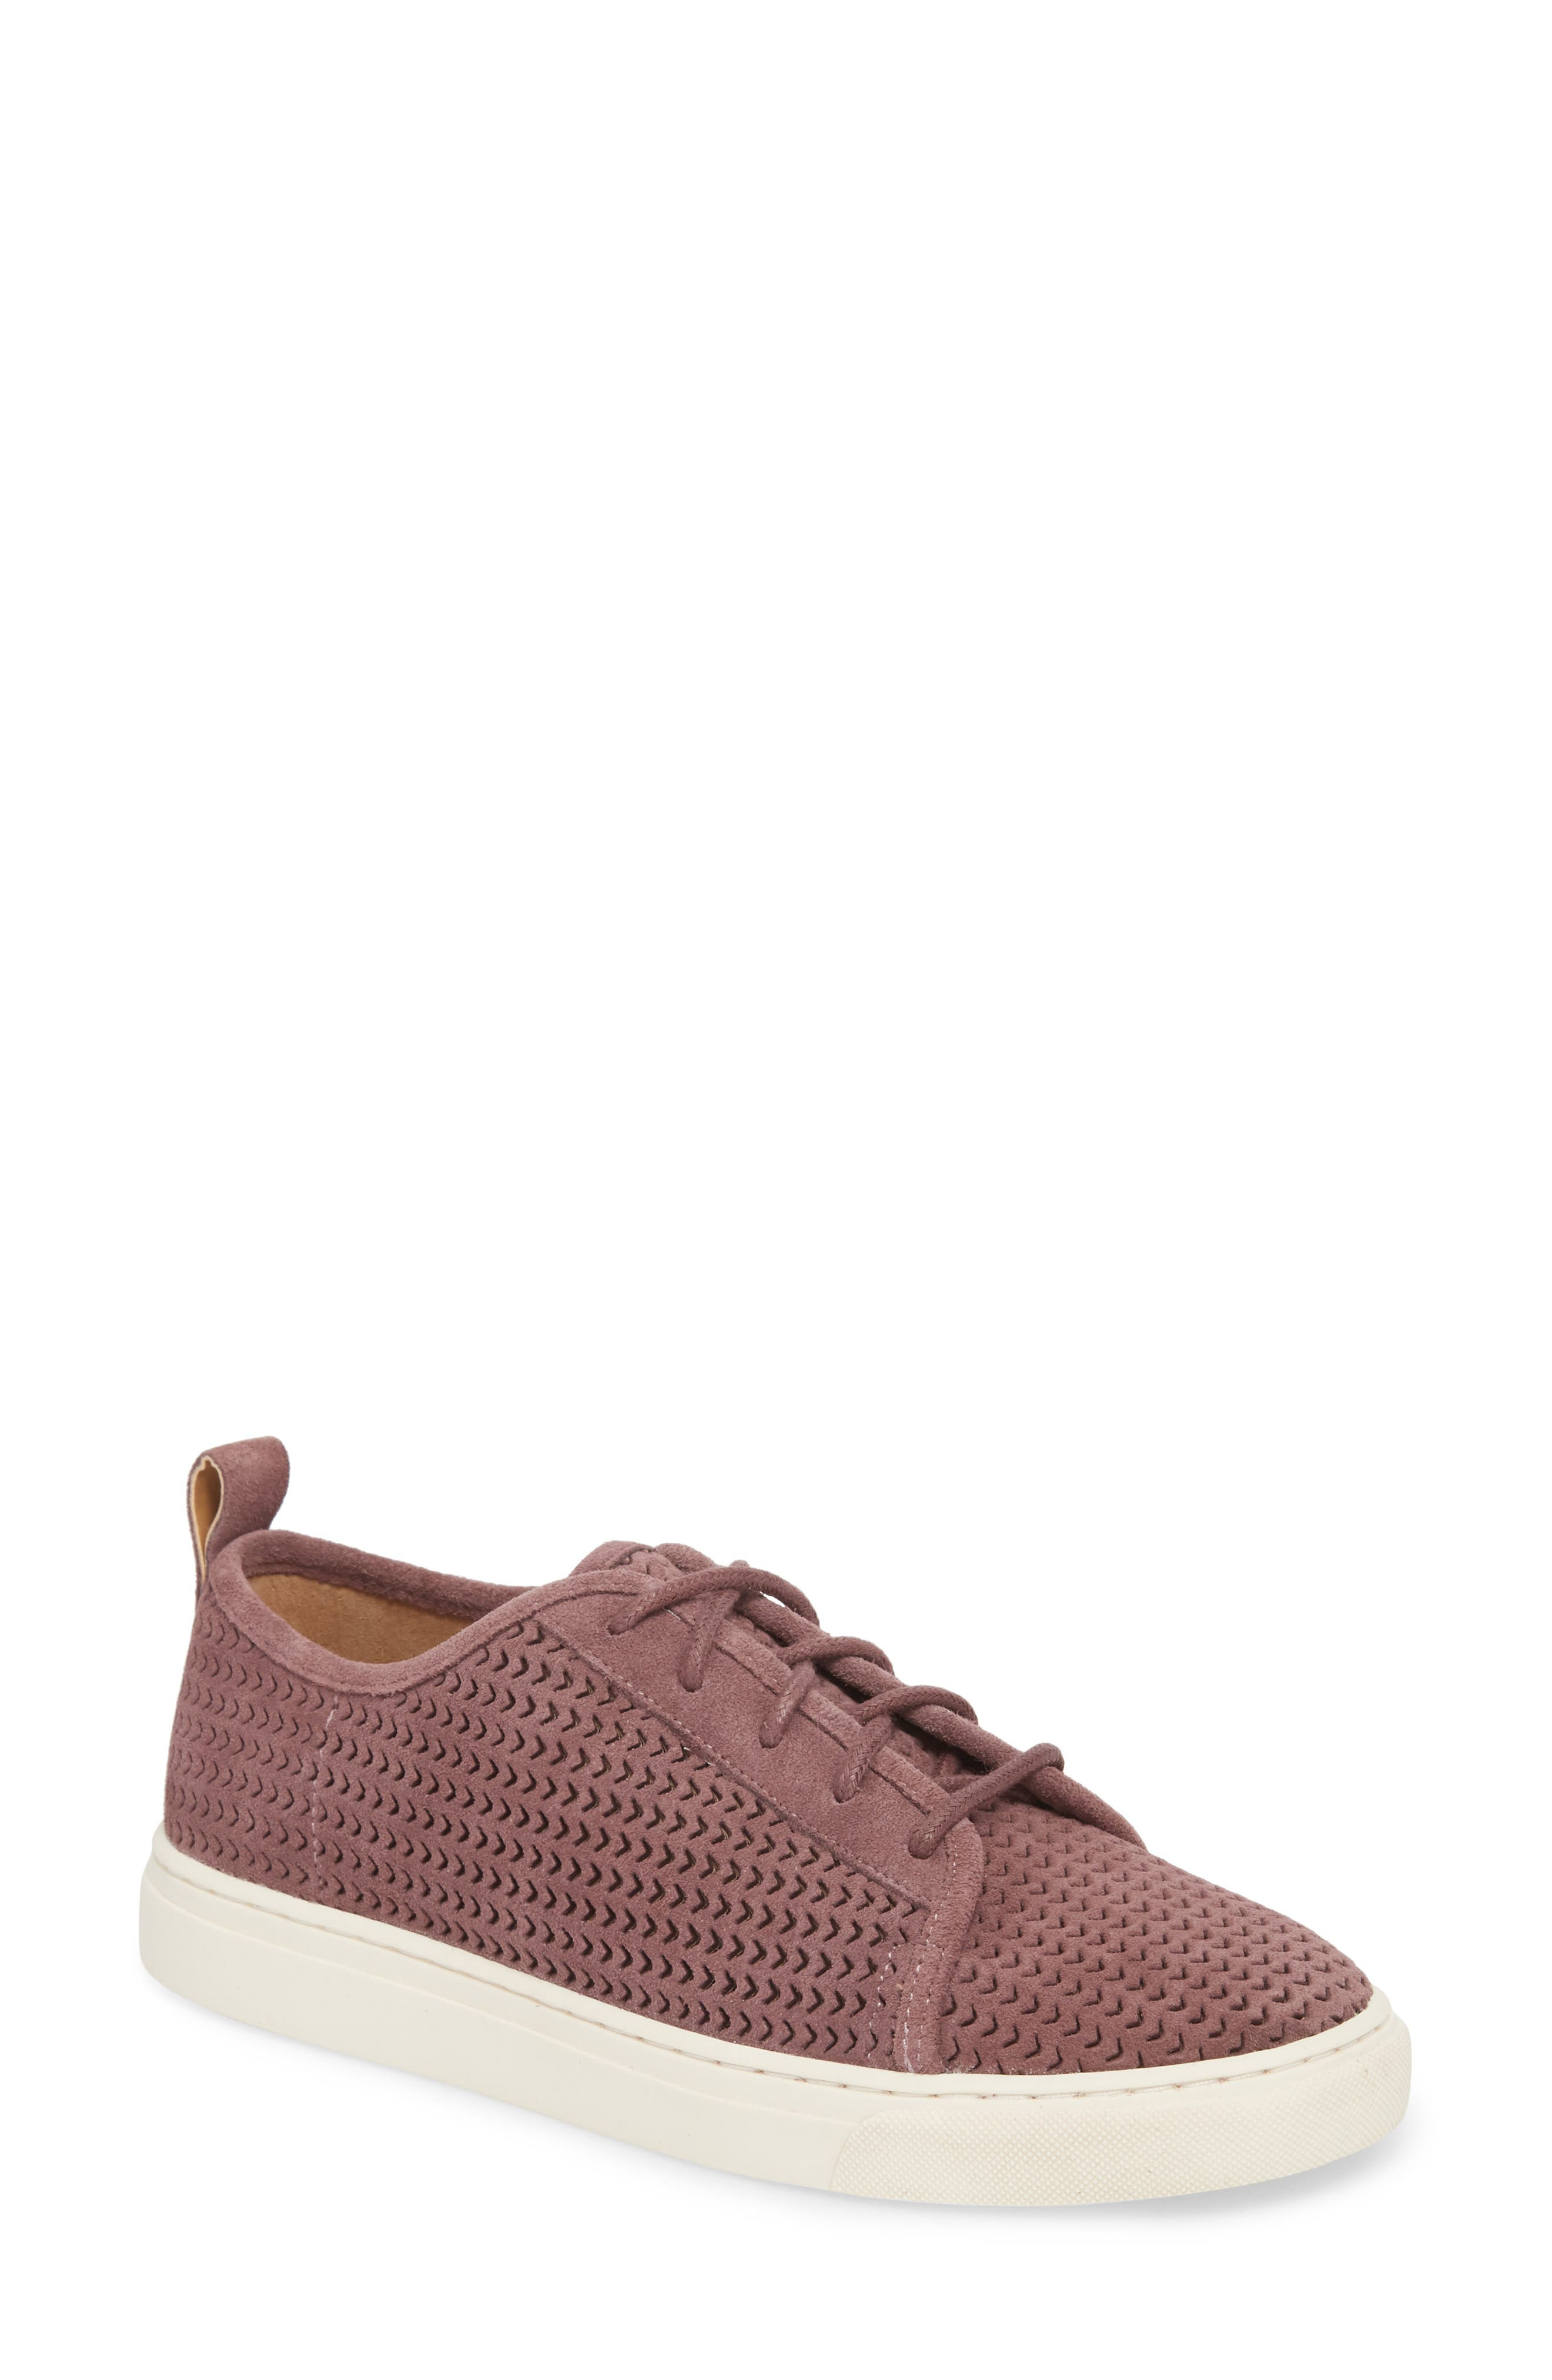 Lawove Sneaker,                             Main thumbnail 1, color,                             Berry Smooth Suede